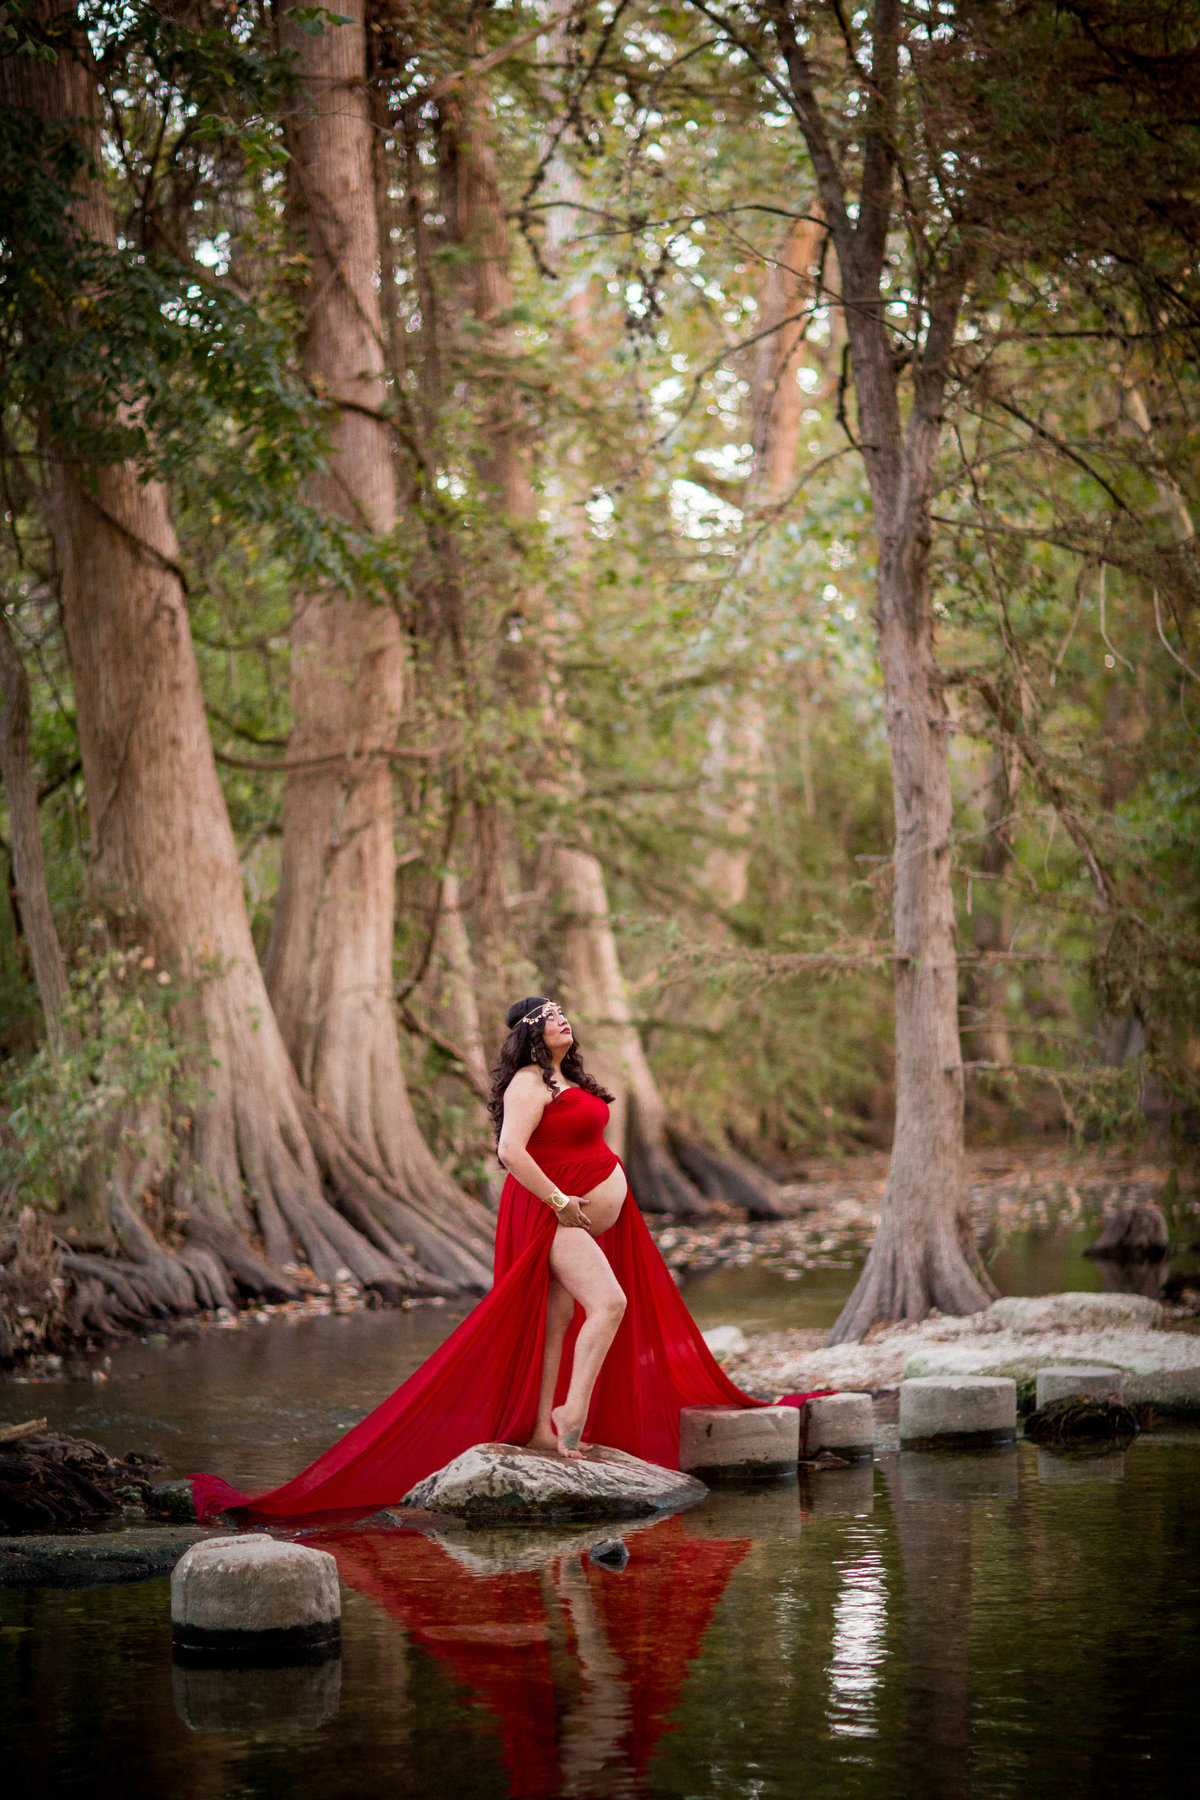 Maternity picture of pregnant woman in red dress holding baby belly and standing in a river.